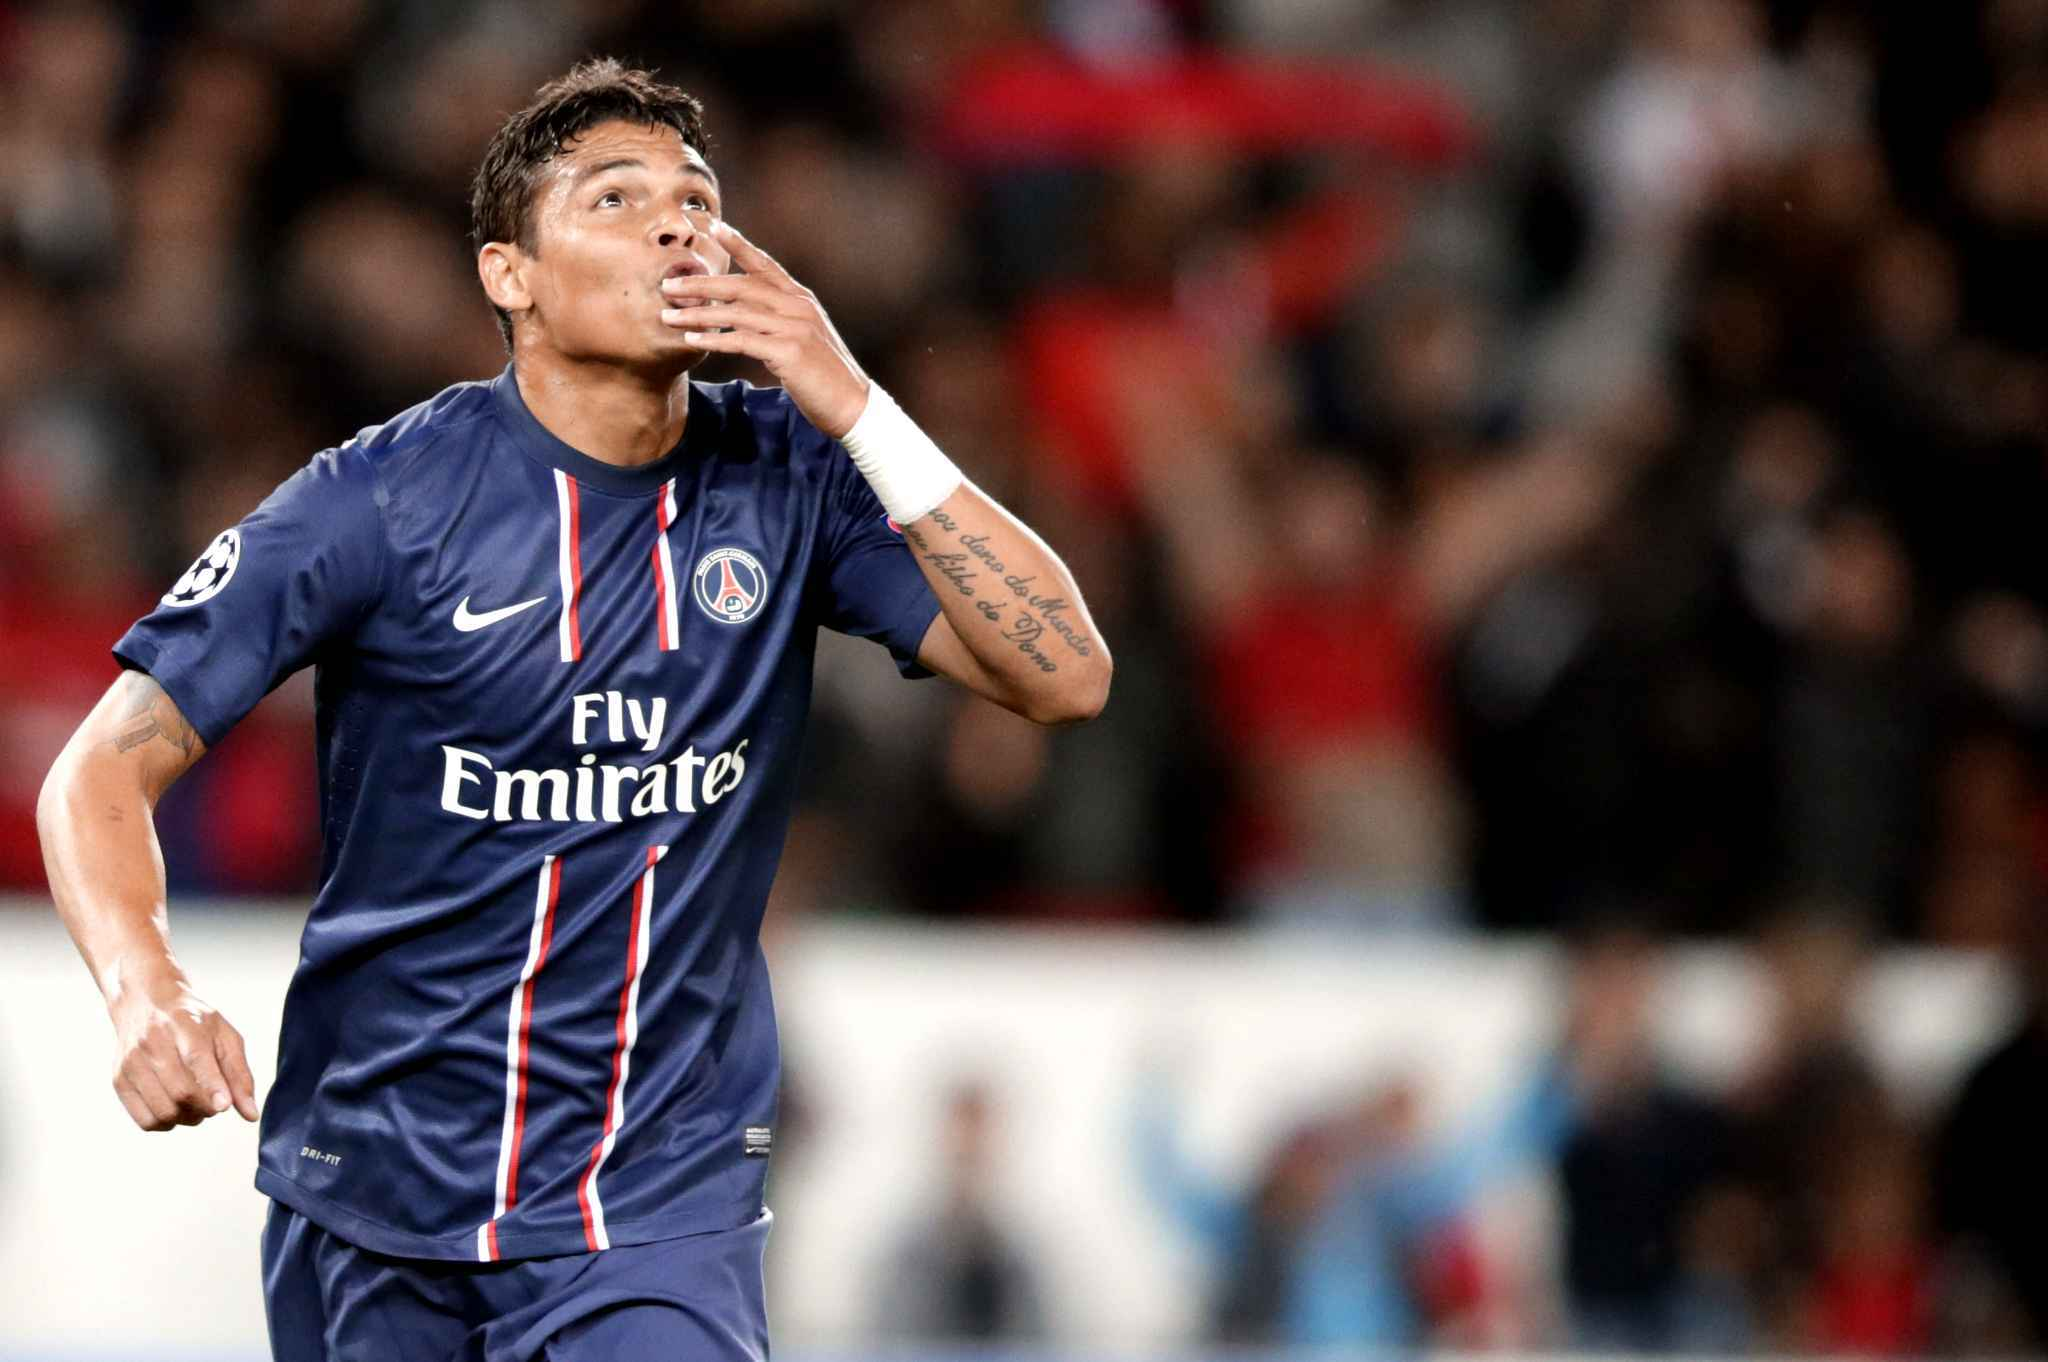 Thiago Silva Football Soccer Player Pass Kiss Hd Free Mobile Desktop Background Download Photos